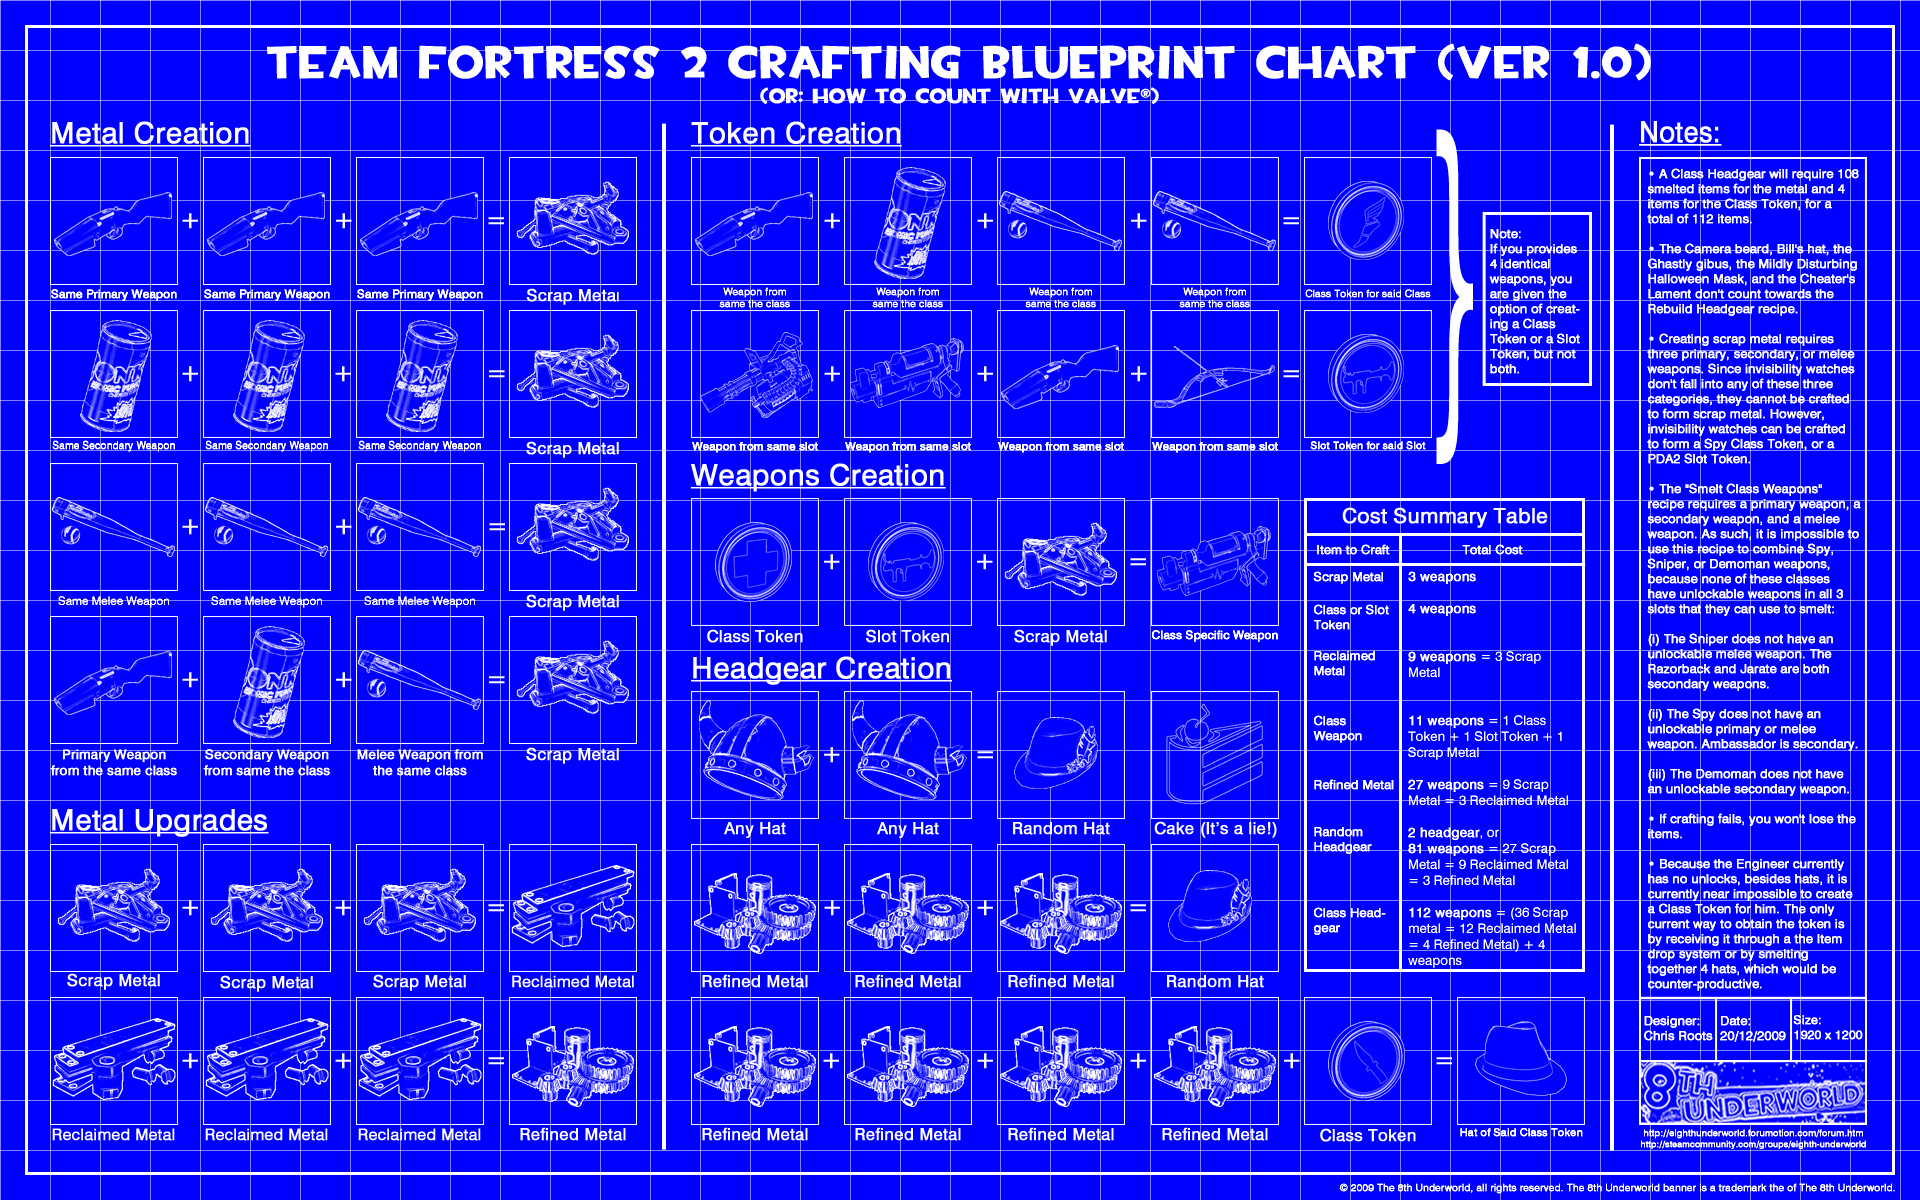 Fortress 2 crafting blueprint chart team fortress 2 crafting blueprint chart malvernweather Gallery